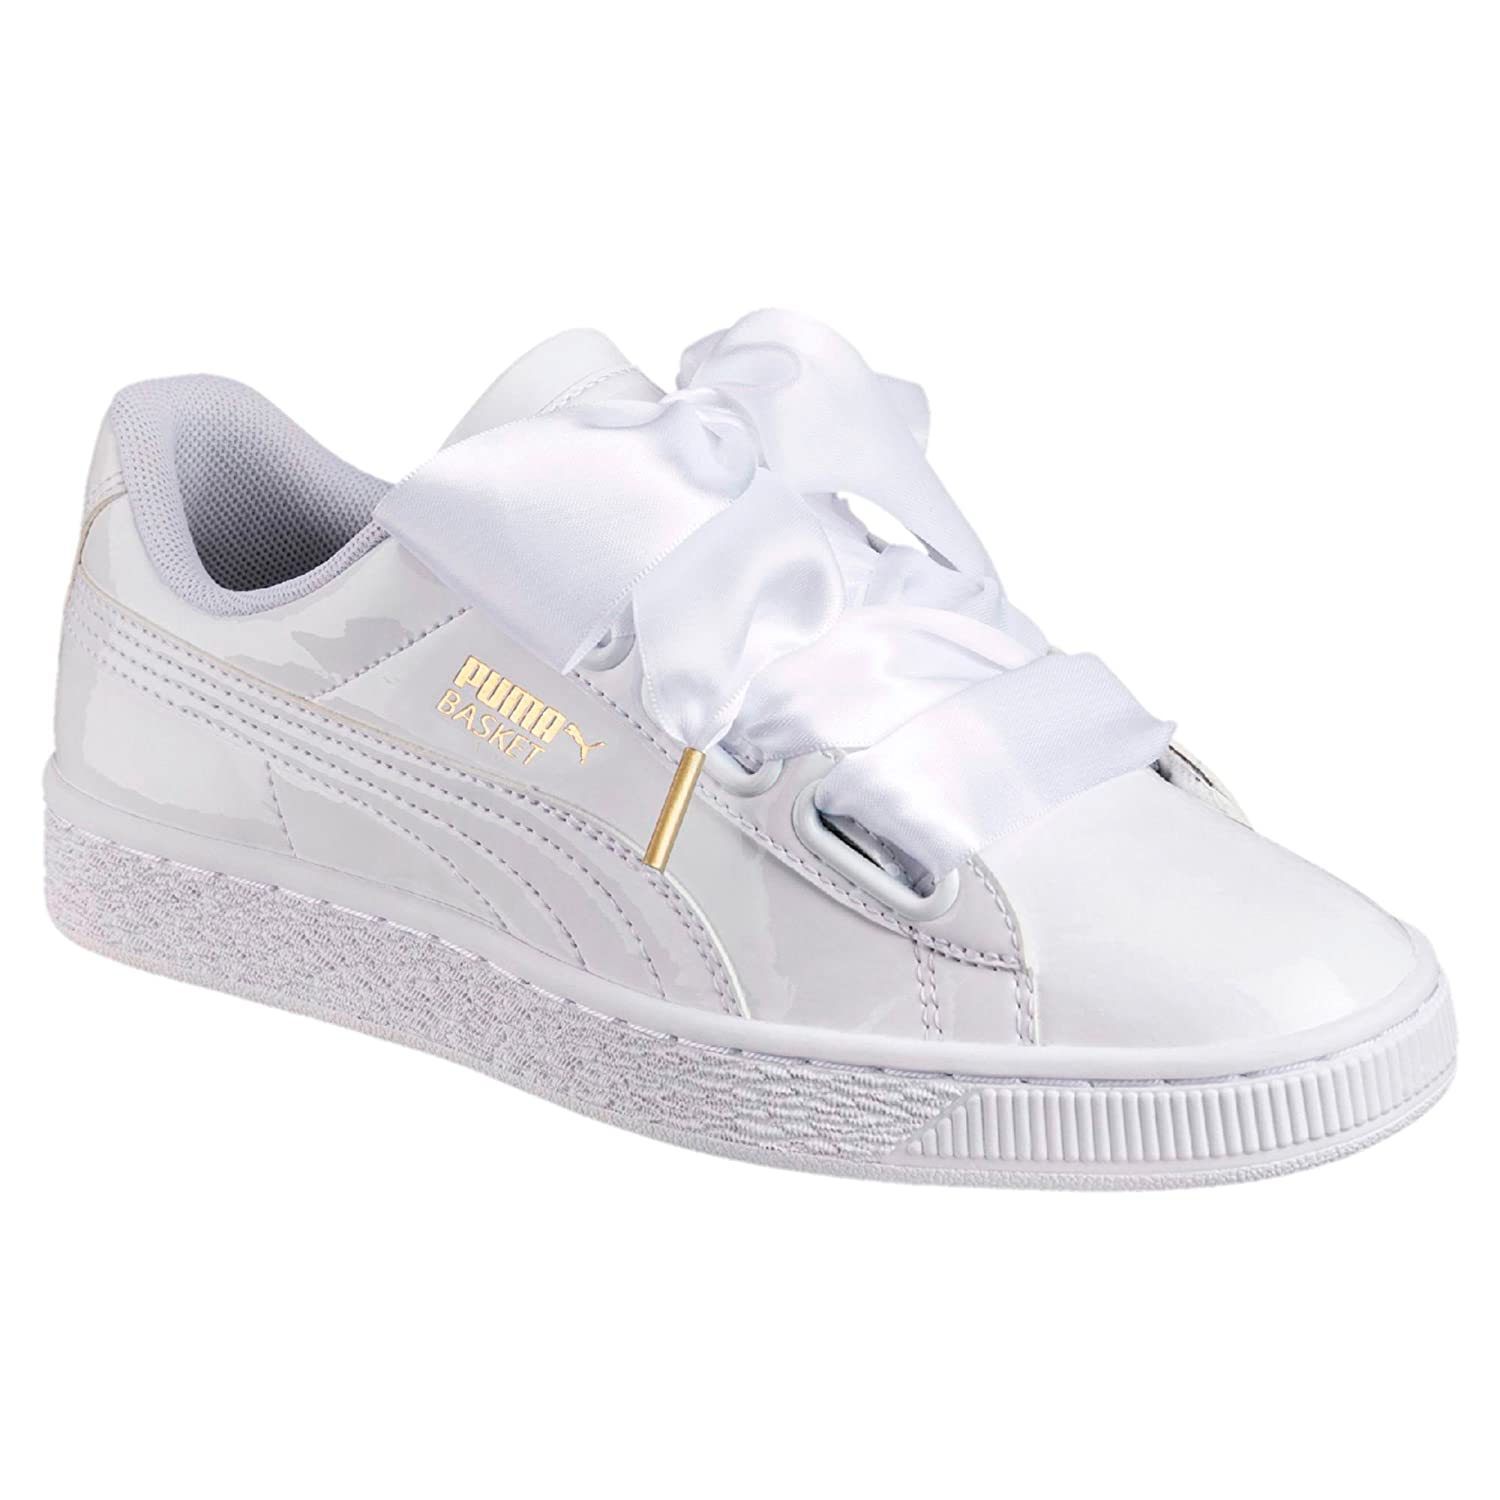 Puma Shoes Puma Basket Damen Flach